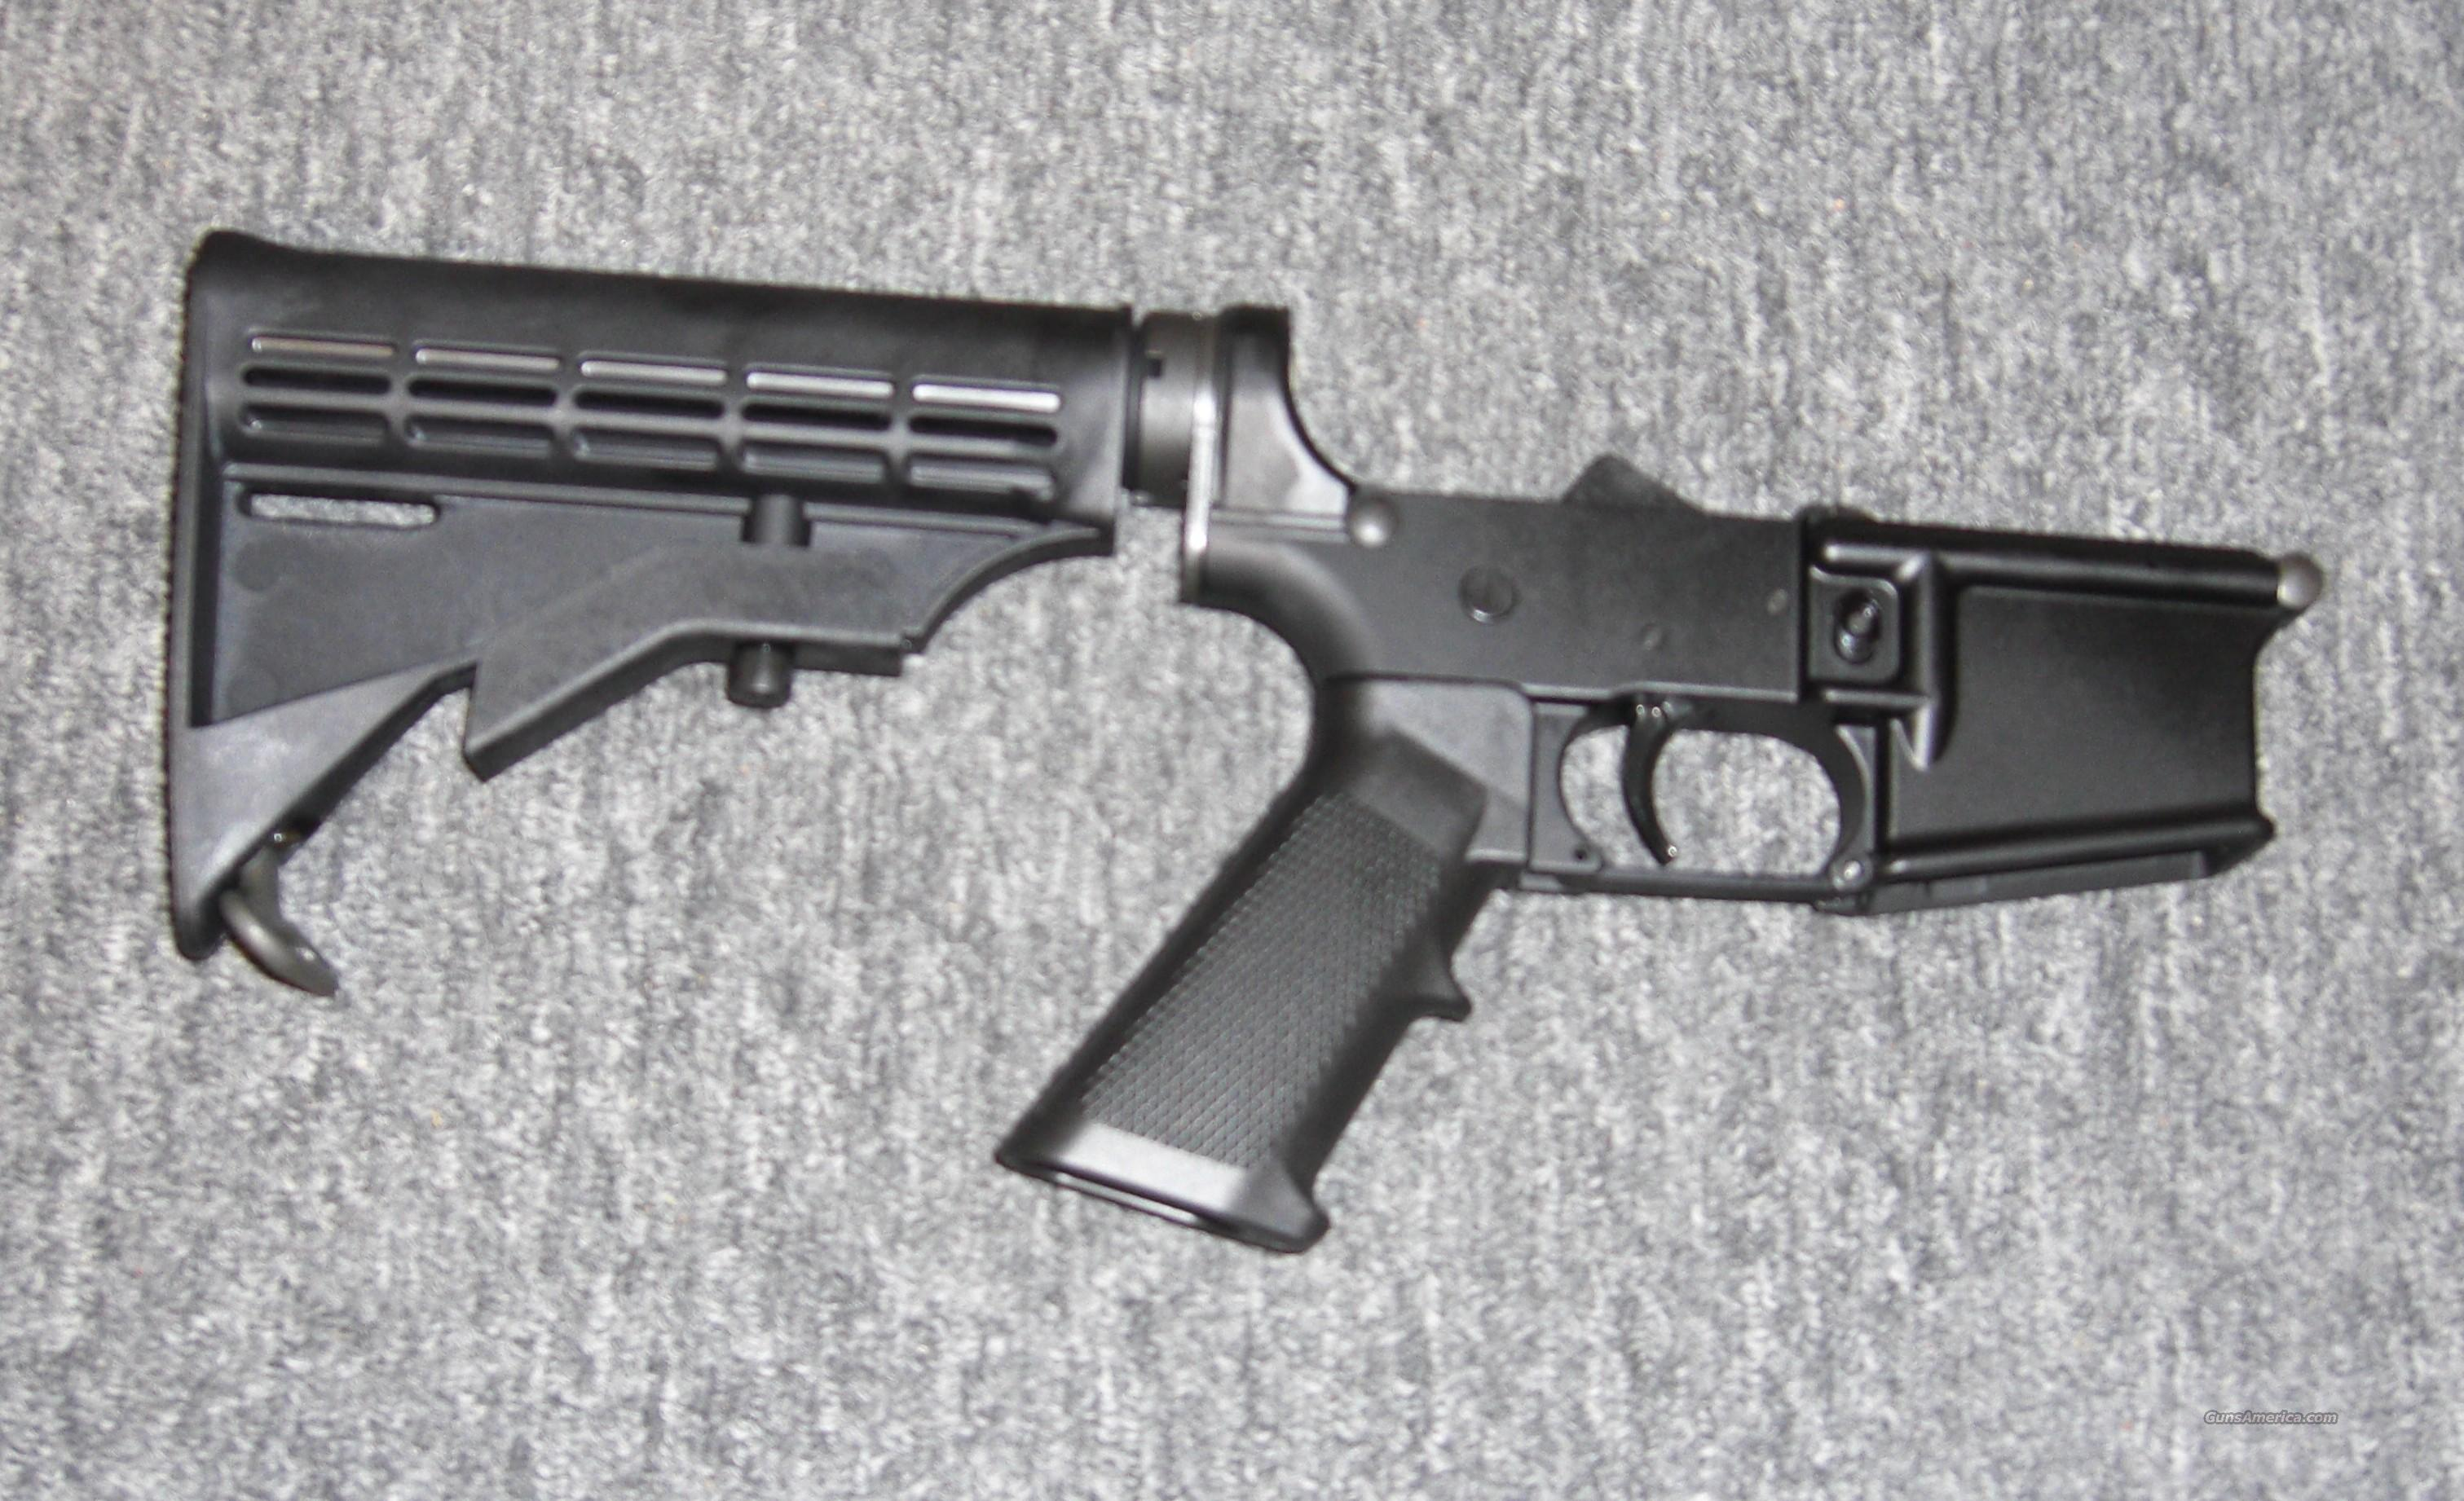 CMMG MK-4 lower w/collapsible stock  Guns > Rifles > AR-15 Rifles - Small Manufacturers > Lower Only